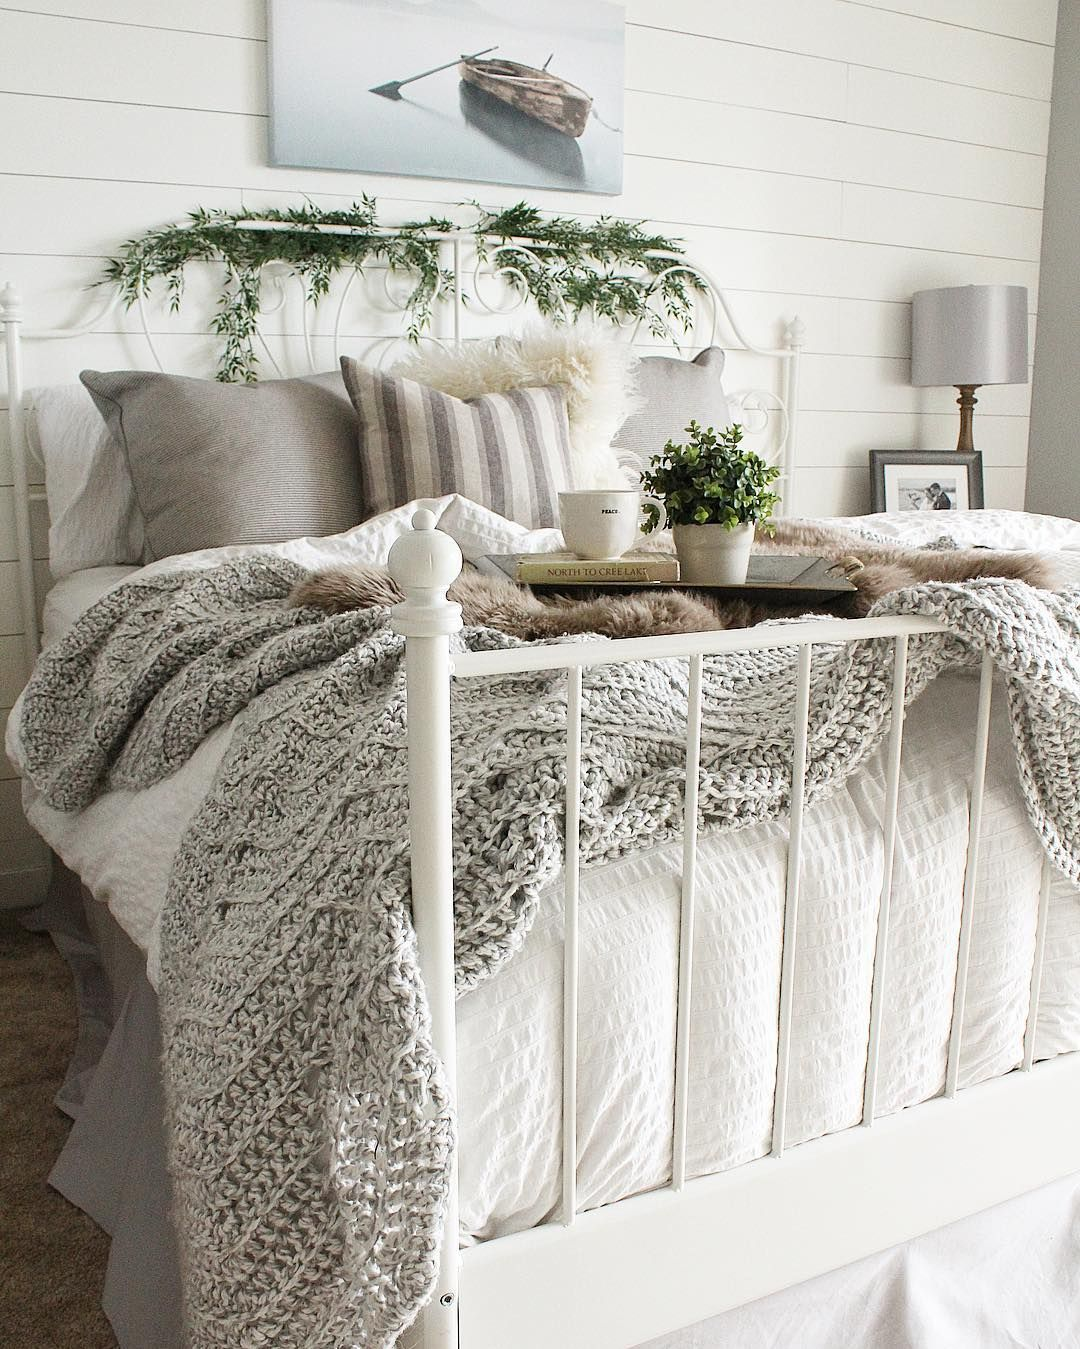 Farmhouse Bedroom with White Bedding